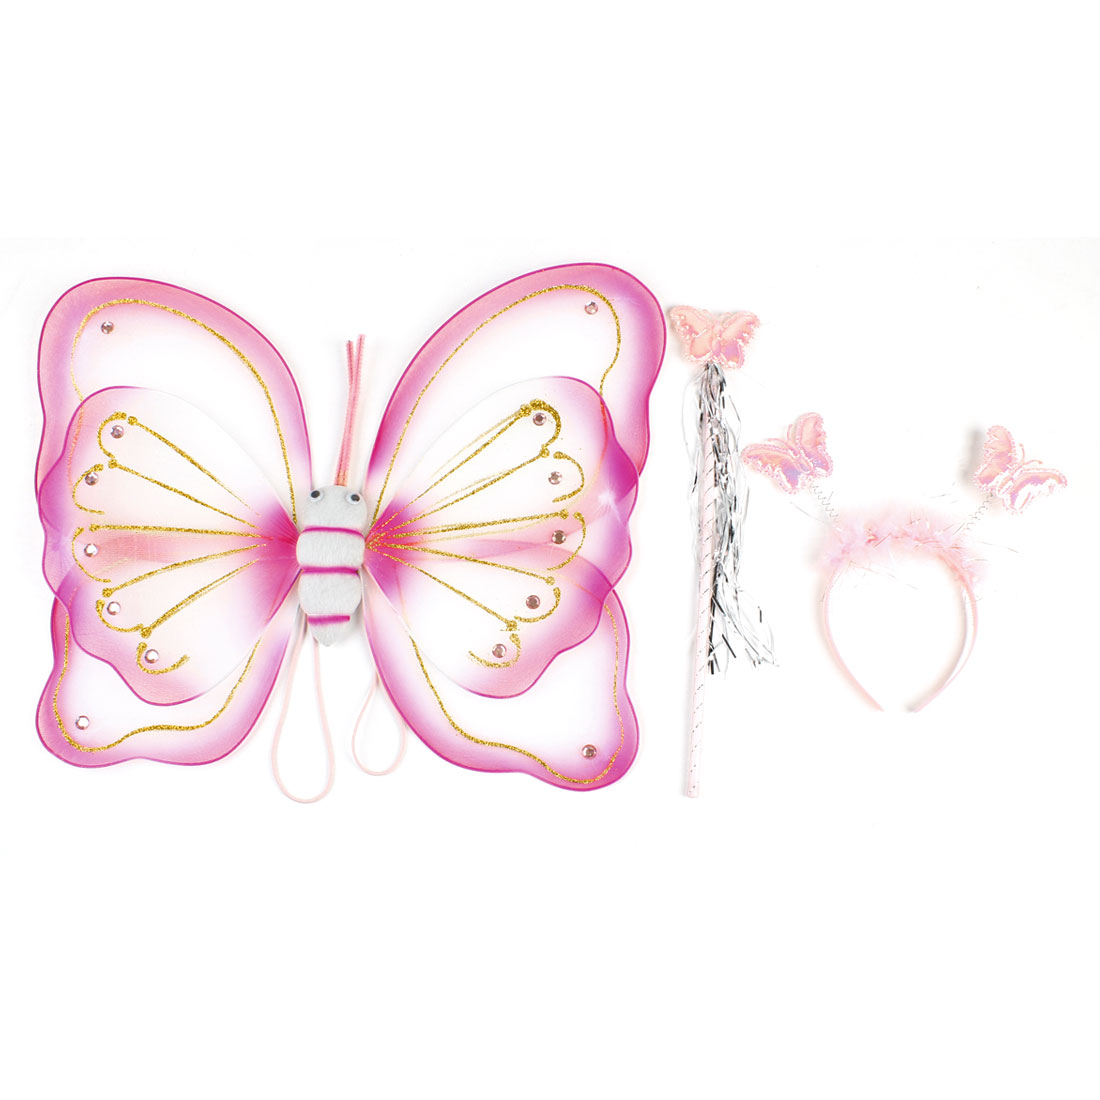 Hot Pink Dressing up Butterfly Wing + Stick + Hair Bow 3 in 1